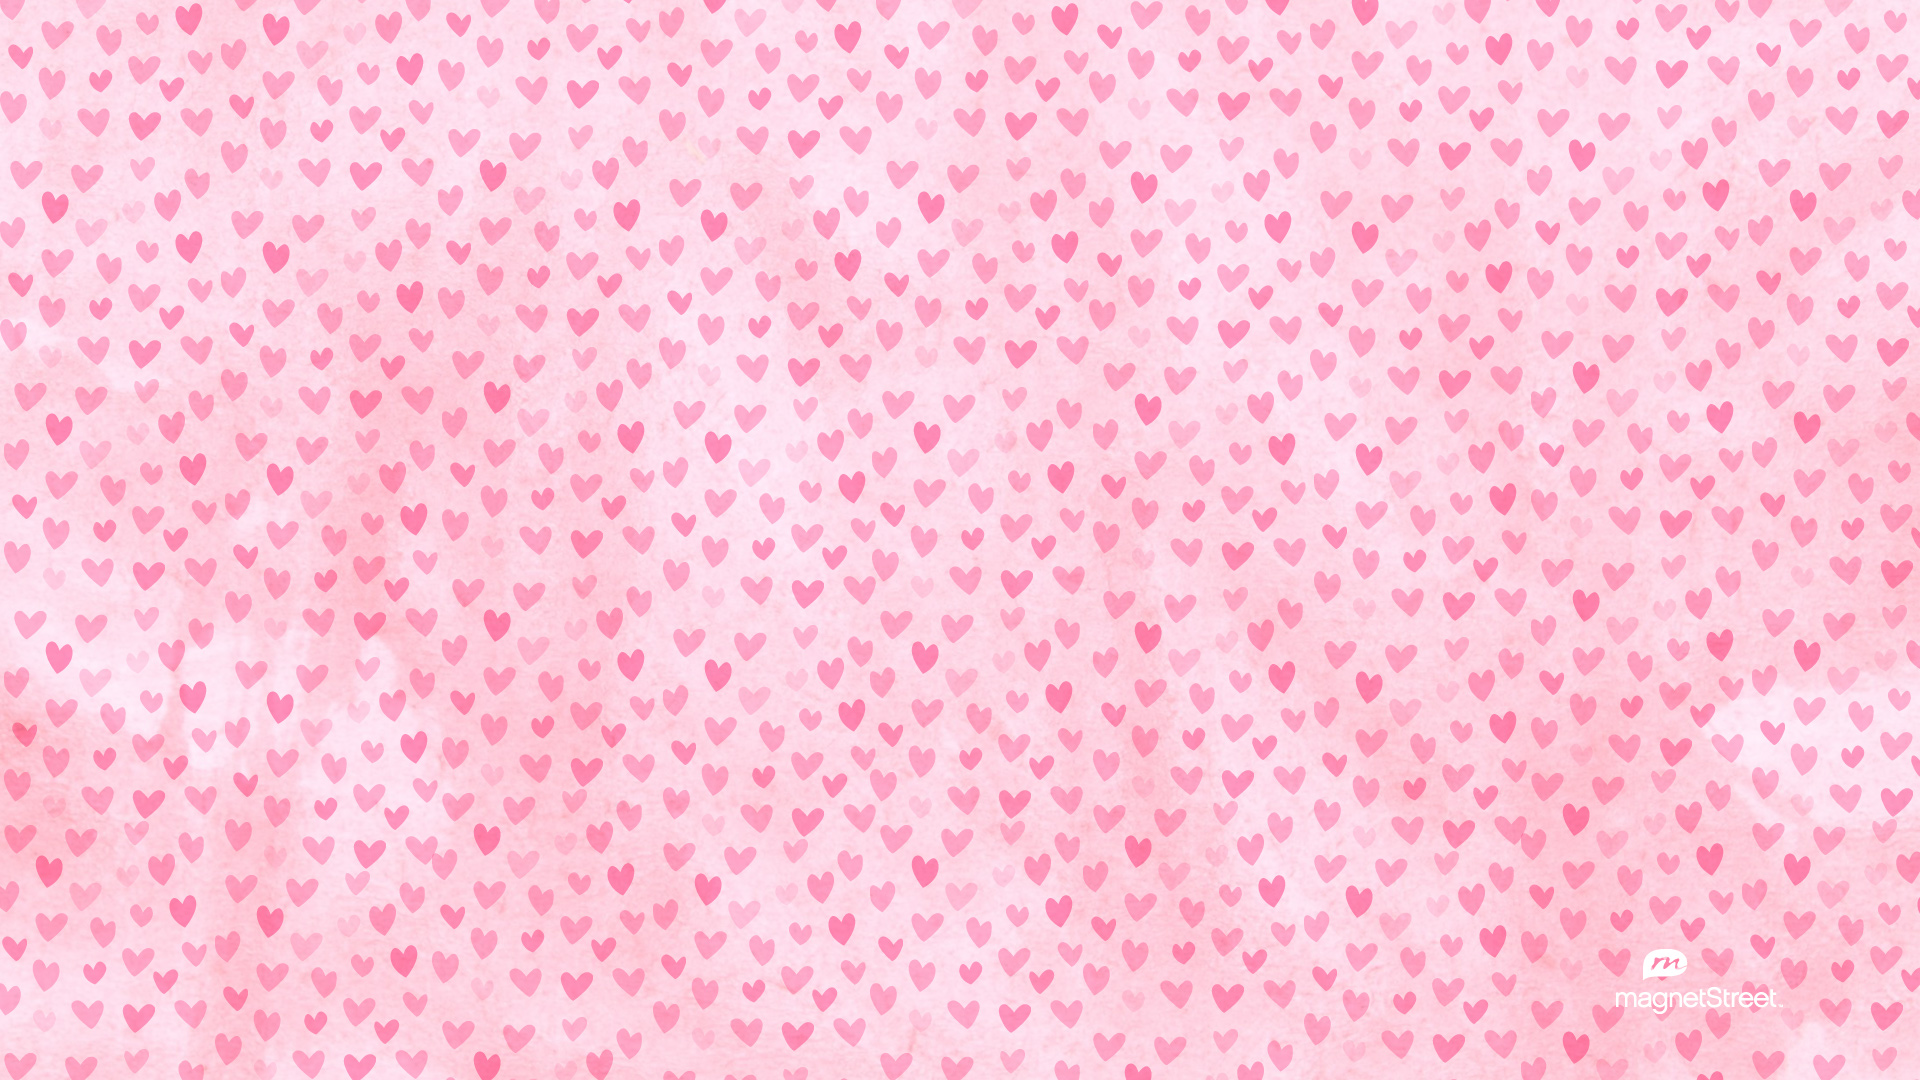 Valentine's Day Desktop Background - Wallpaper, High ...